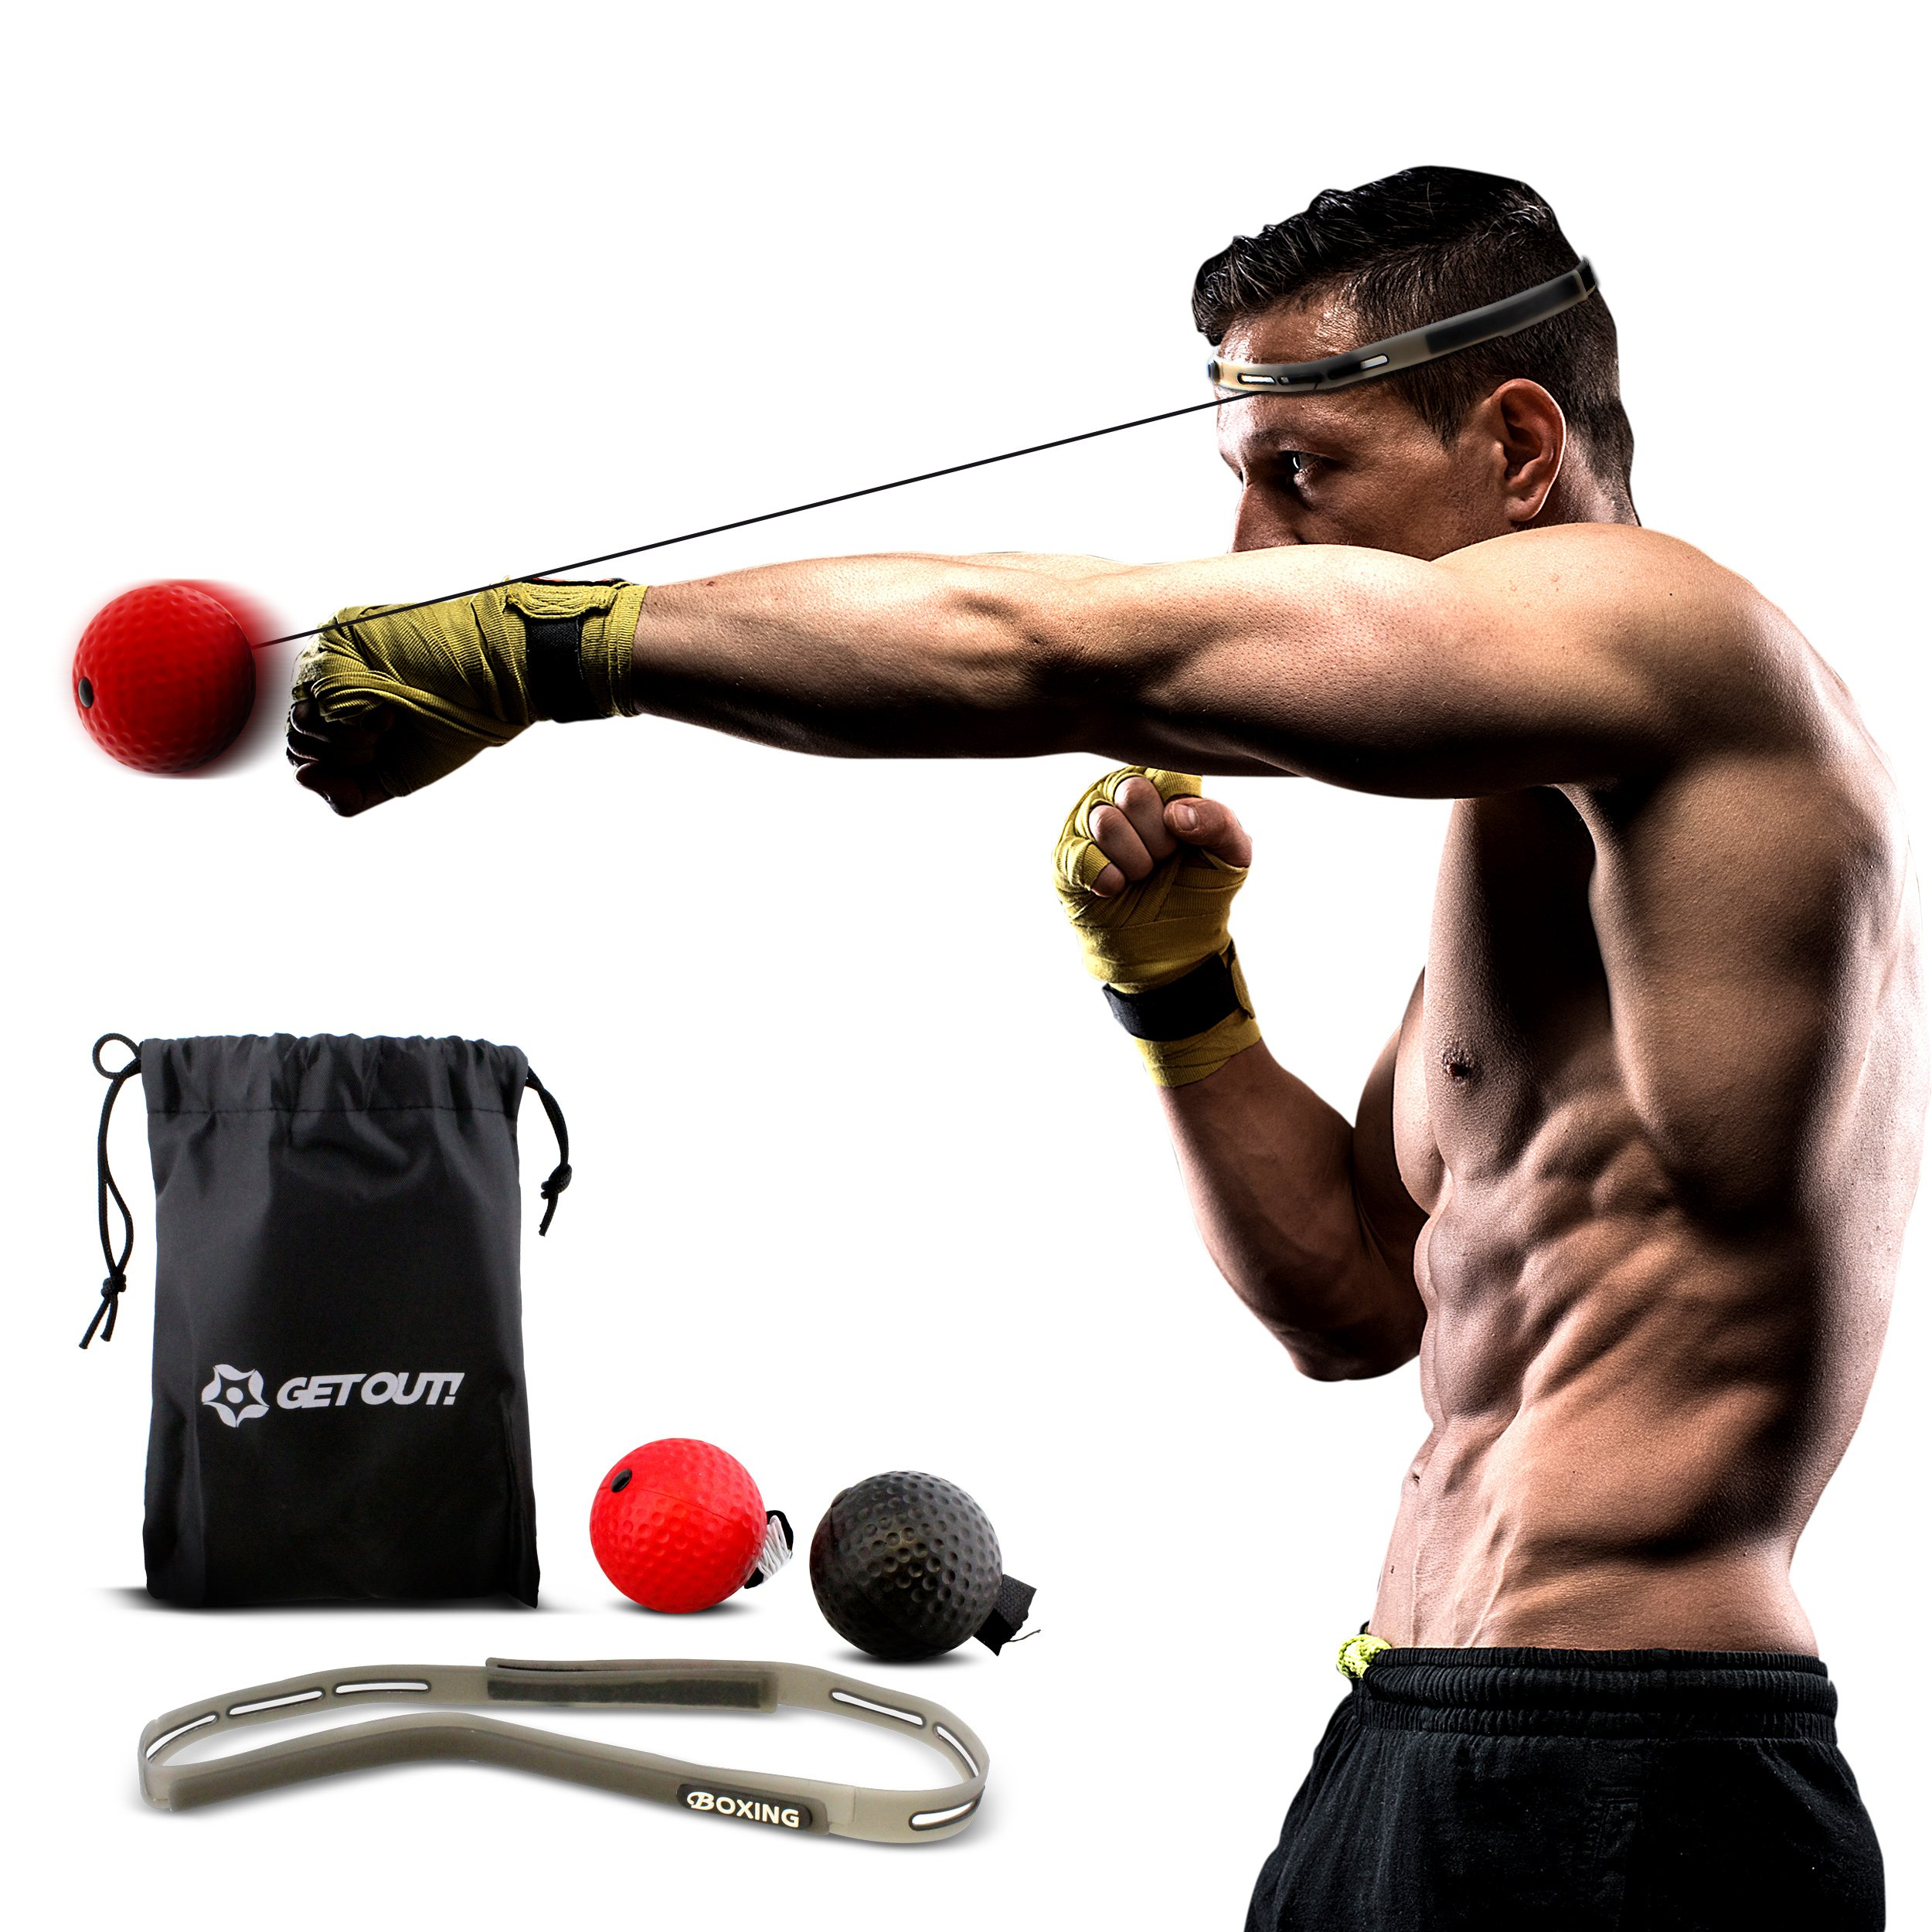 Get Out! Boxing Reflex Ball Set – Agility Training Headband Boxing Ball on String, Boxing Training Reaction Ball by Get Out!